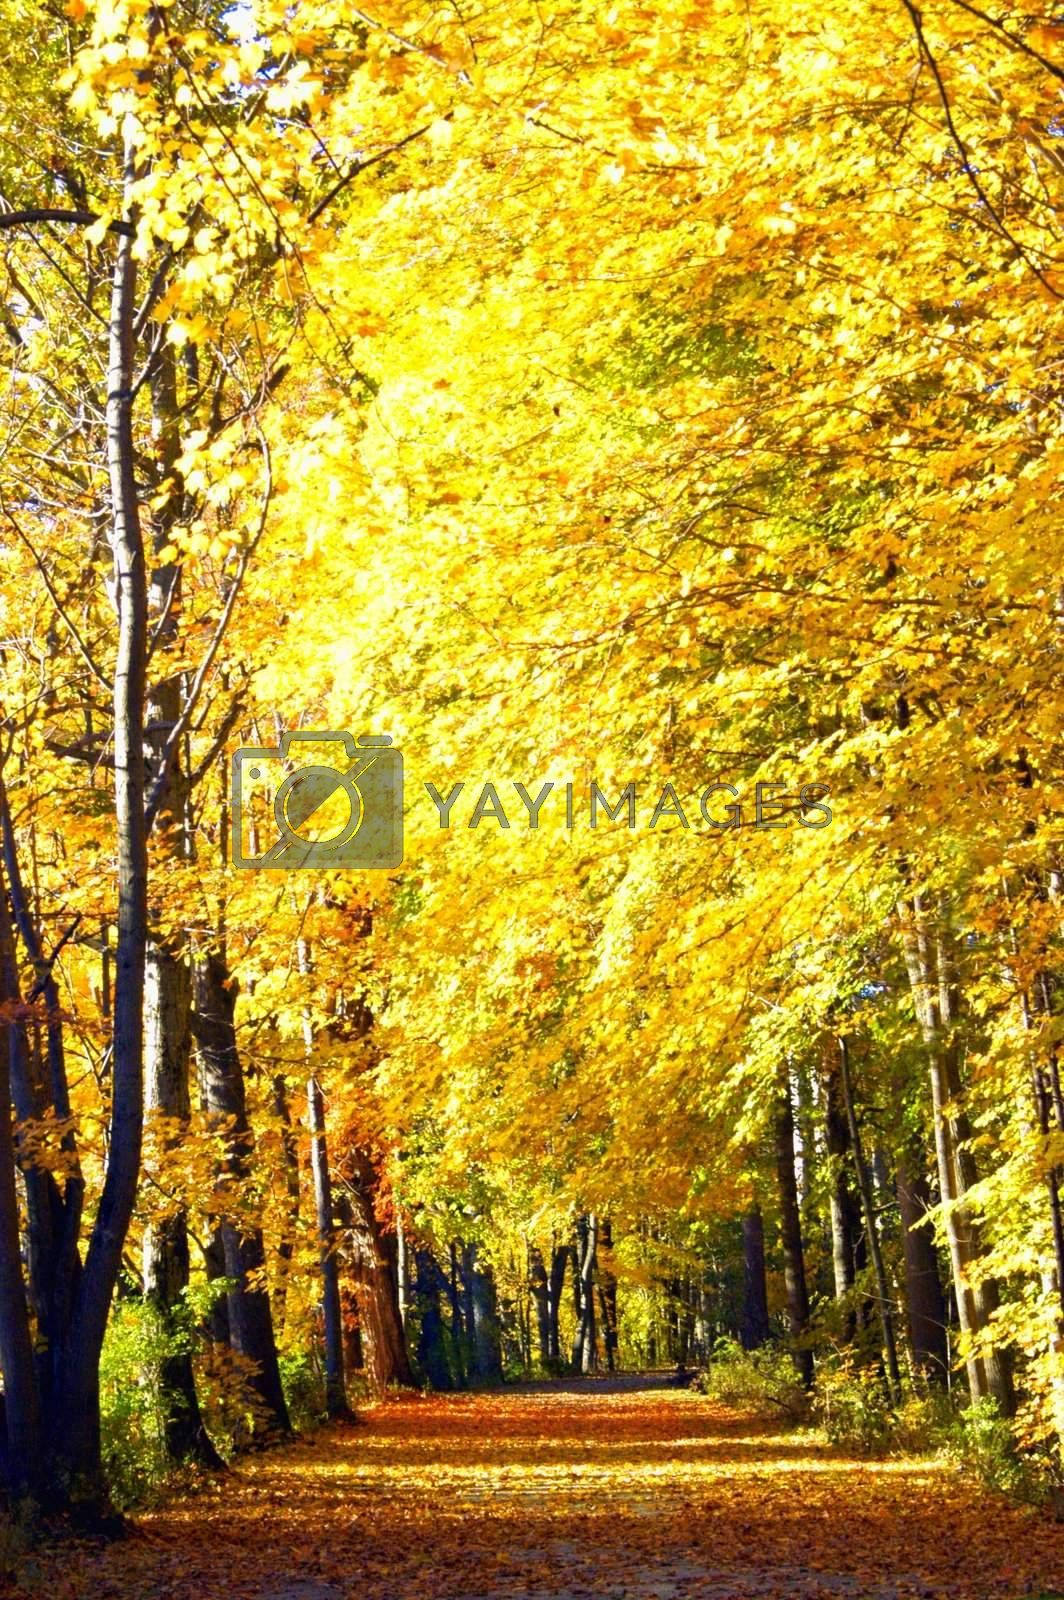 Beautiful golden leaves and trees lined pathway